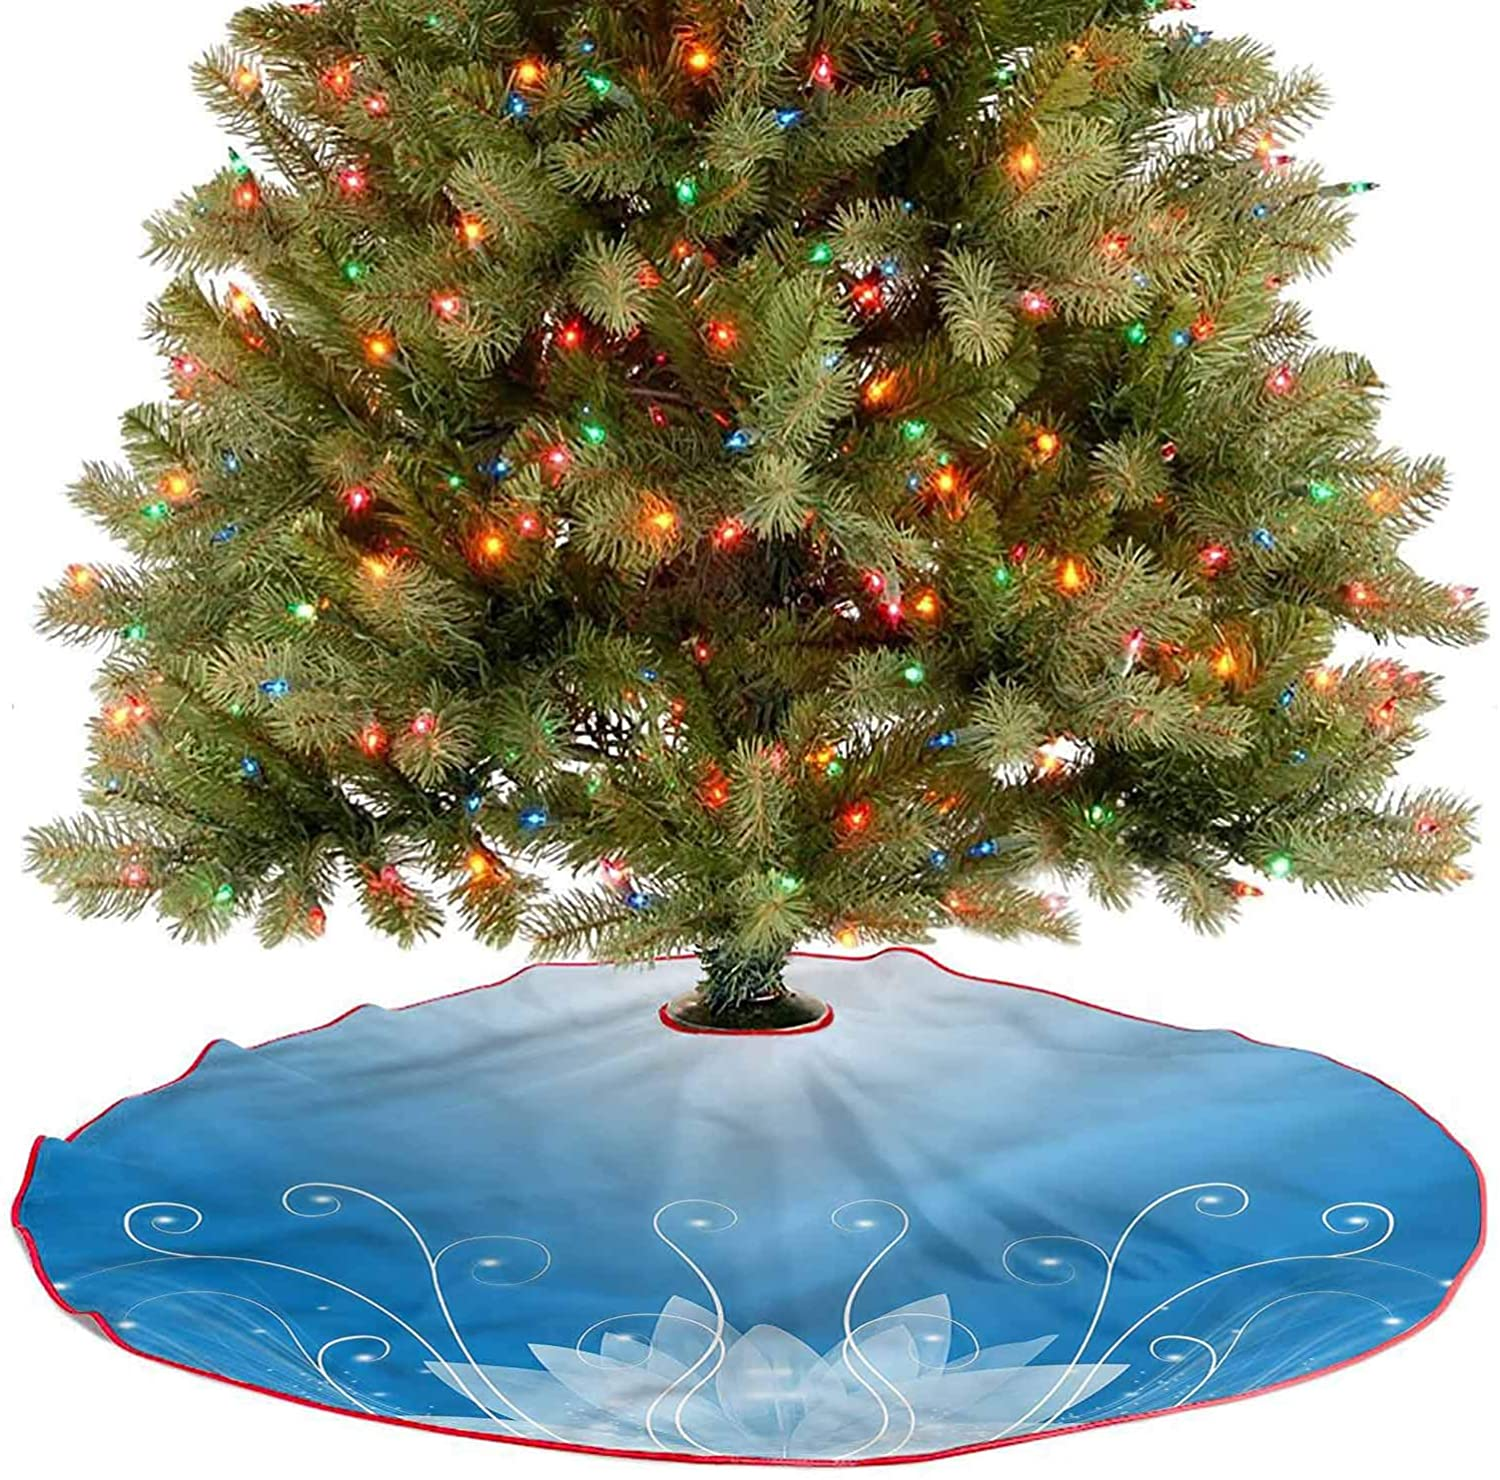 ThinkingPower Soft Christmas Tree Mat Botany Theme Flowers Pattern Fine Decorative Handicraft for Christmas Tree Holiday DéCor Diameter - 48 Inch